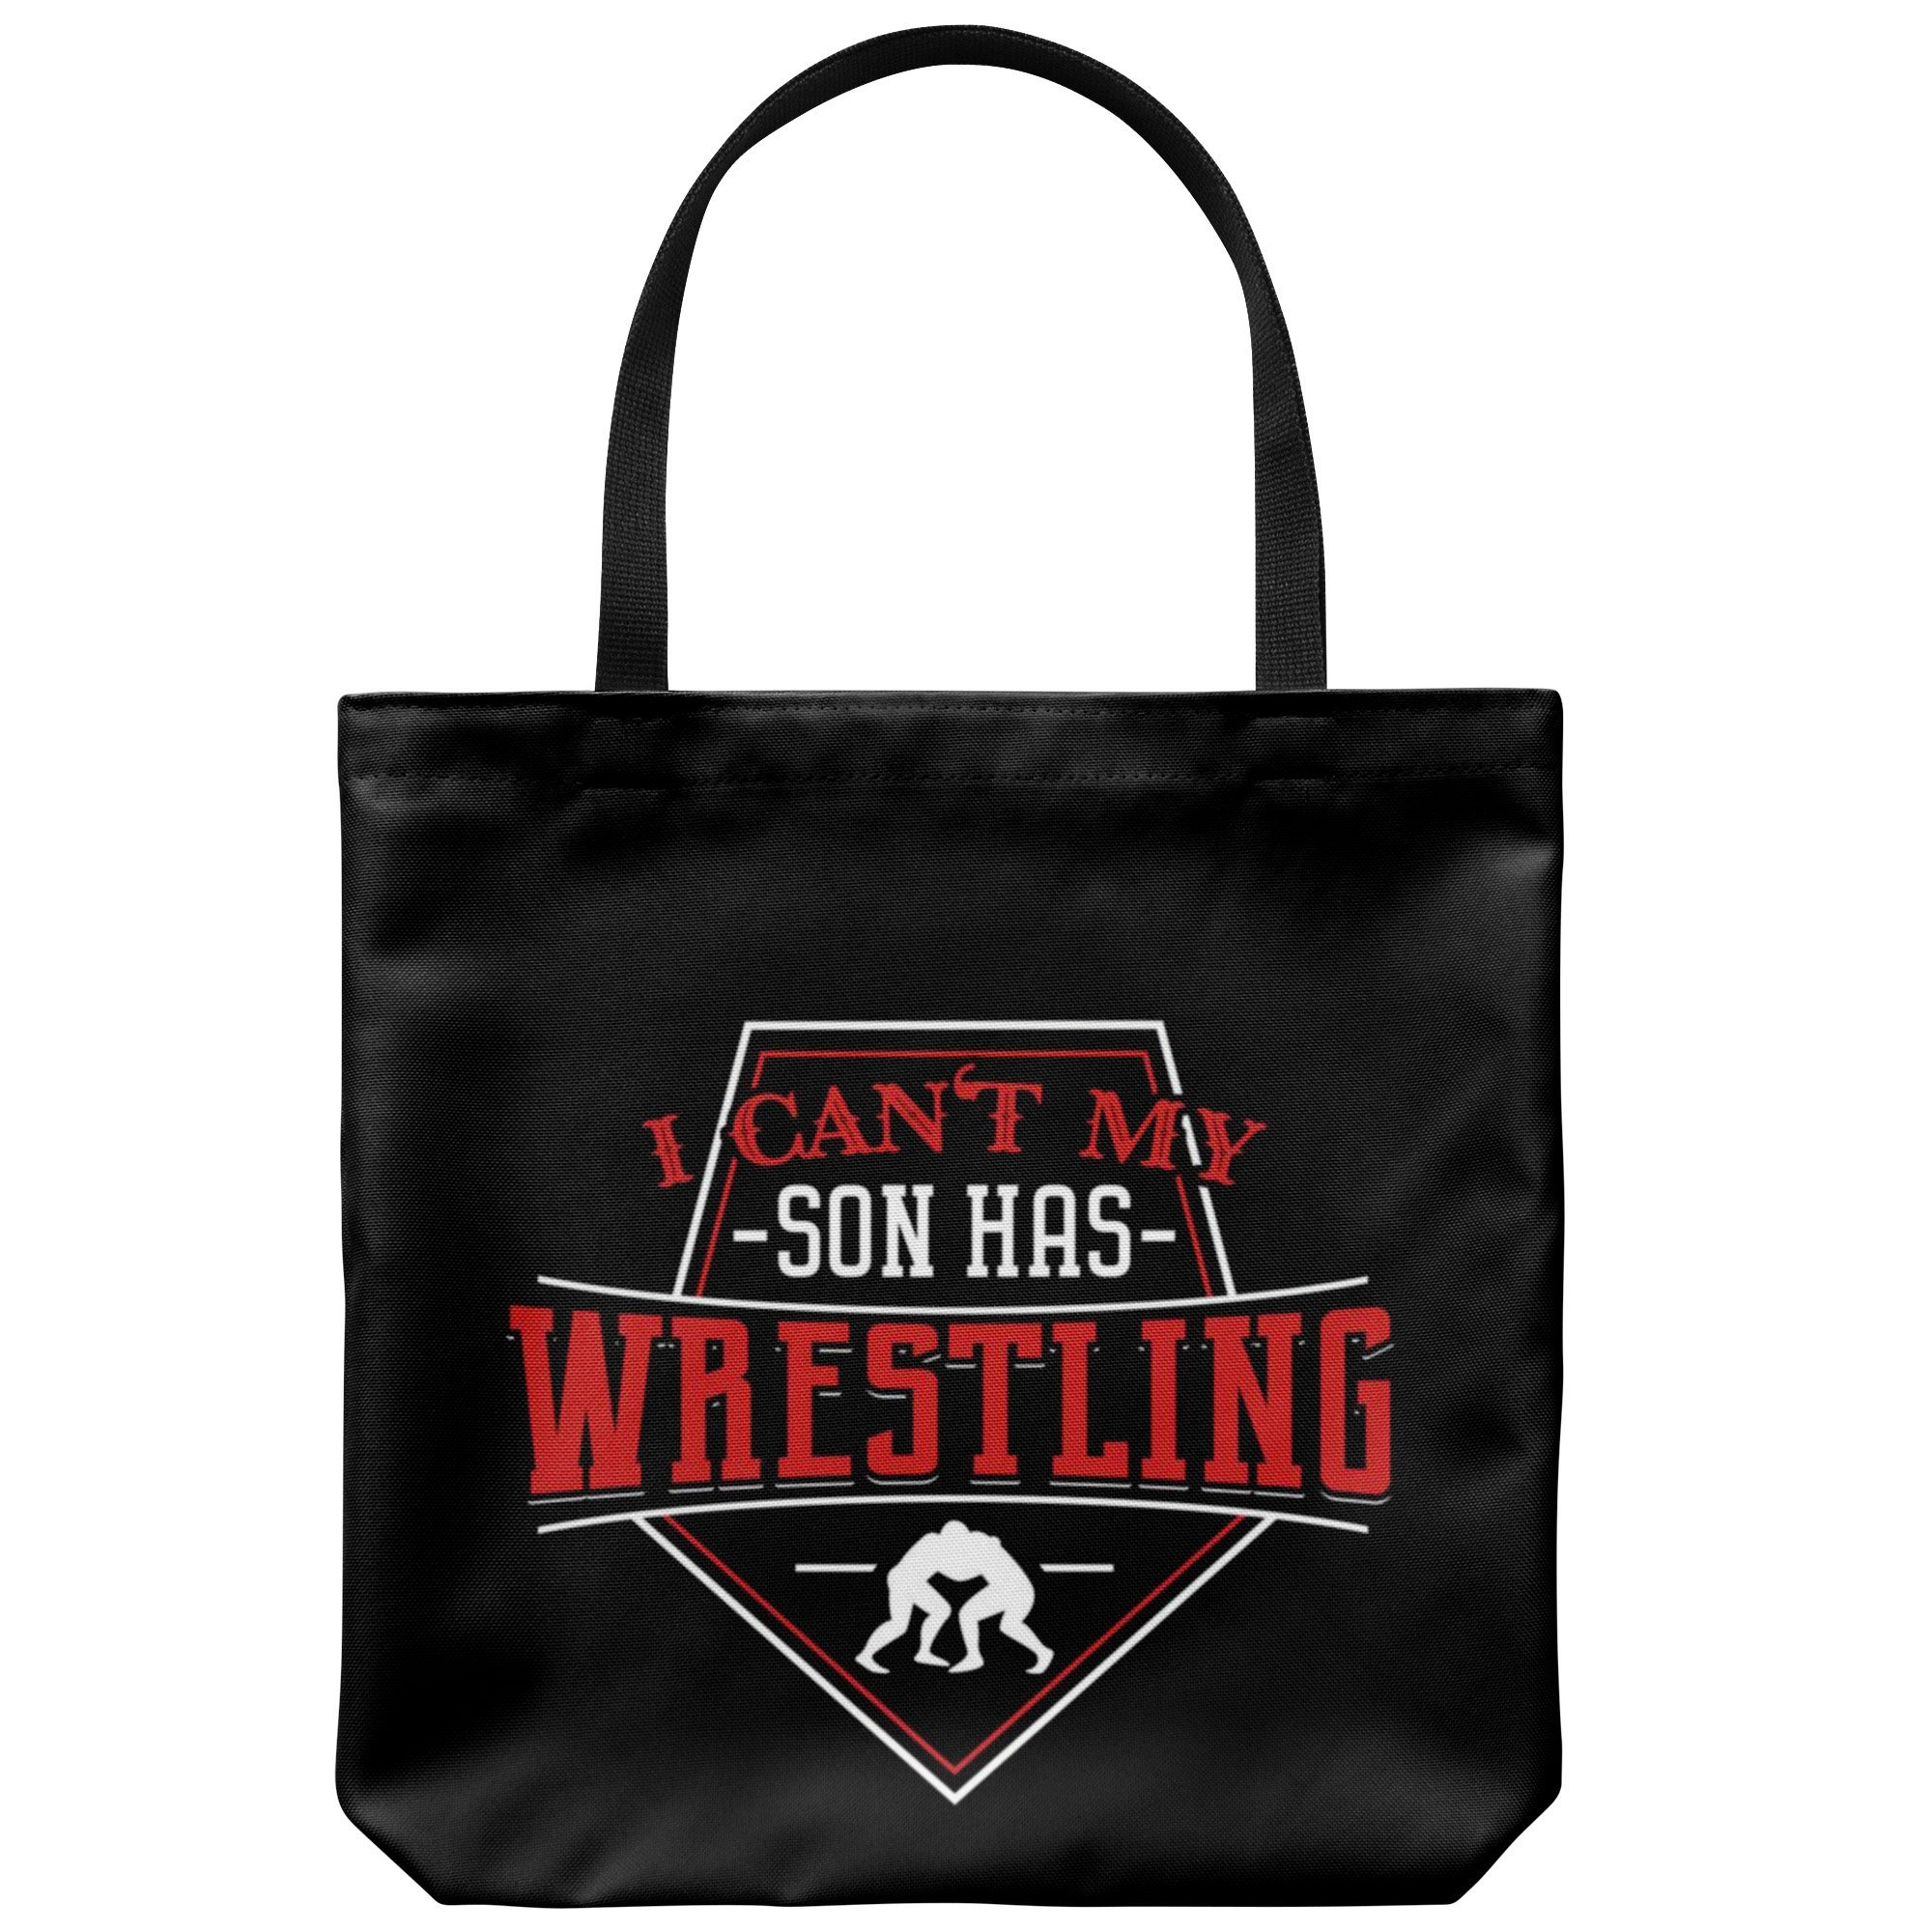 Wrestling Dad Canvas Tote Bag Funny Father's Day Wrestler Training - Can't Son